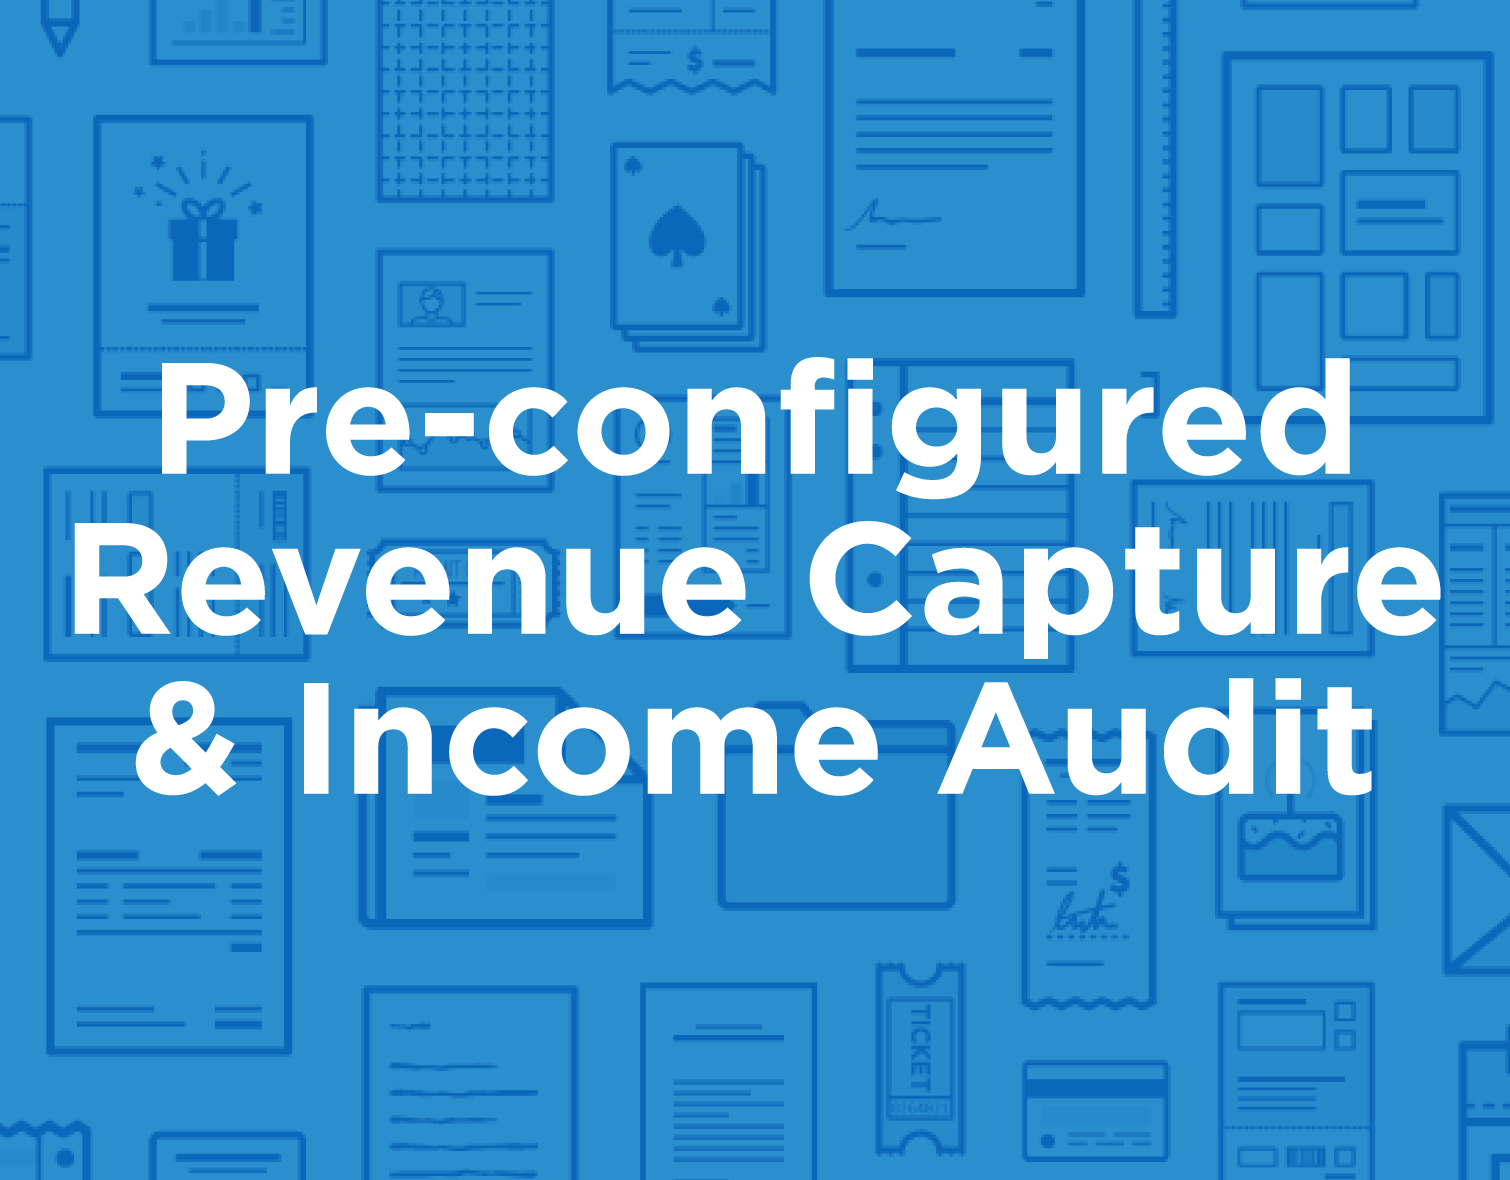 icon_products_Pre-configured-Revenue-Capture-&-Income-Audit.jpg